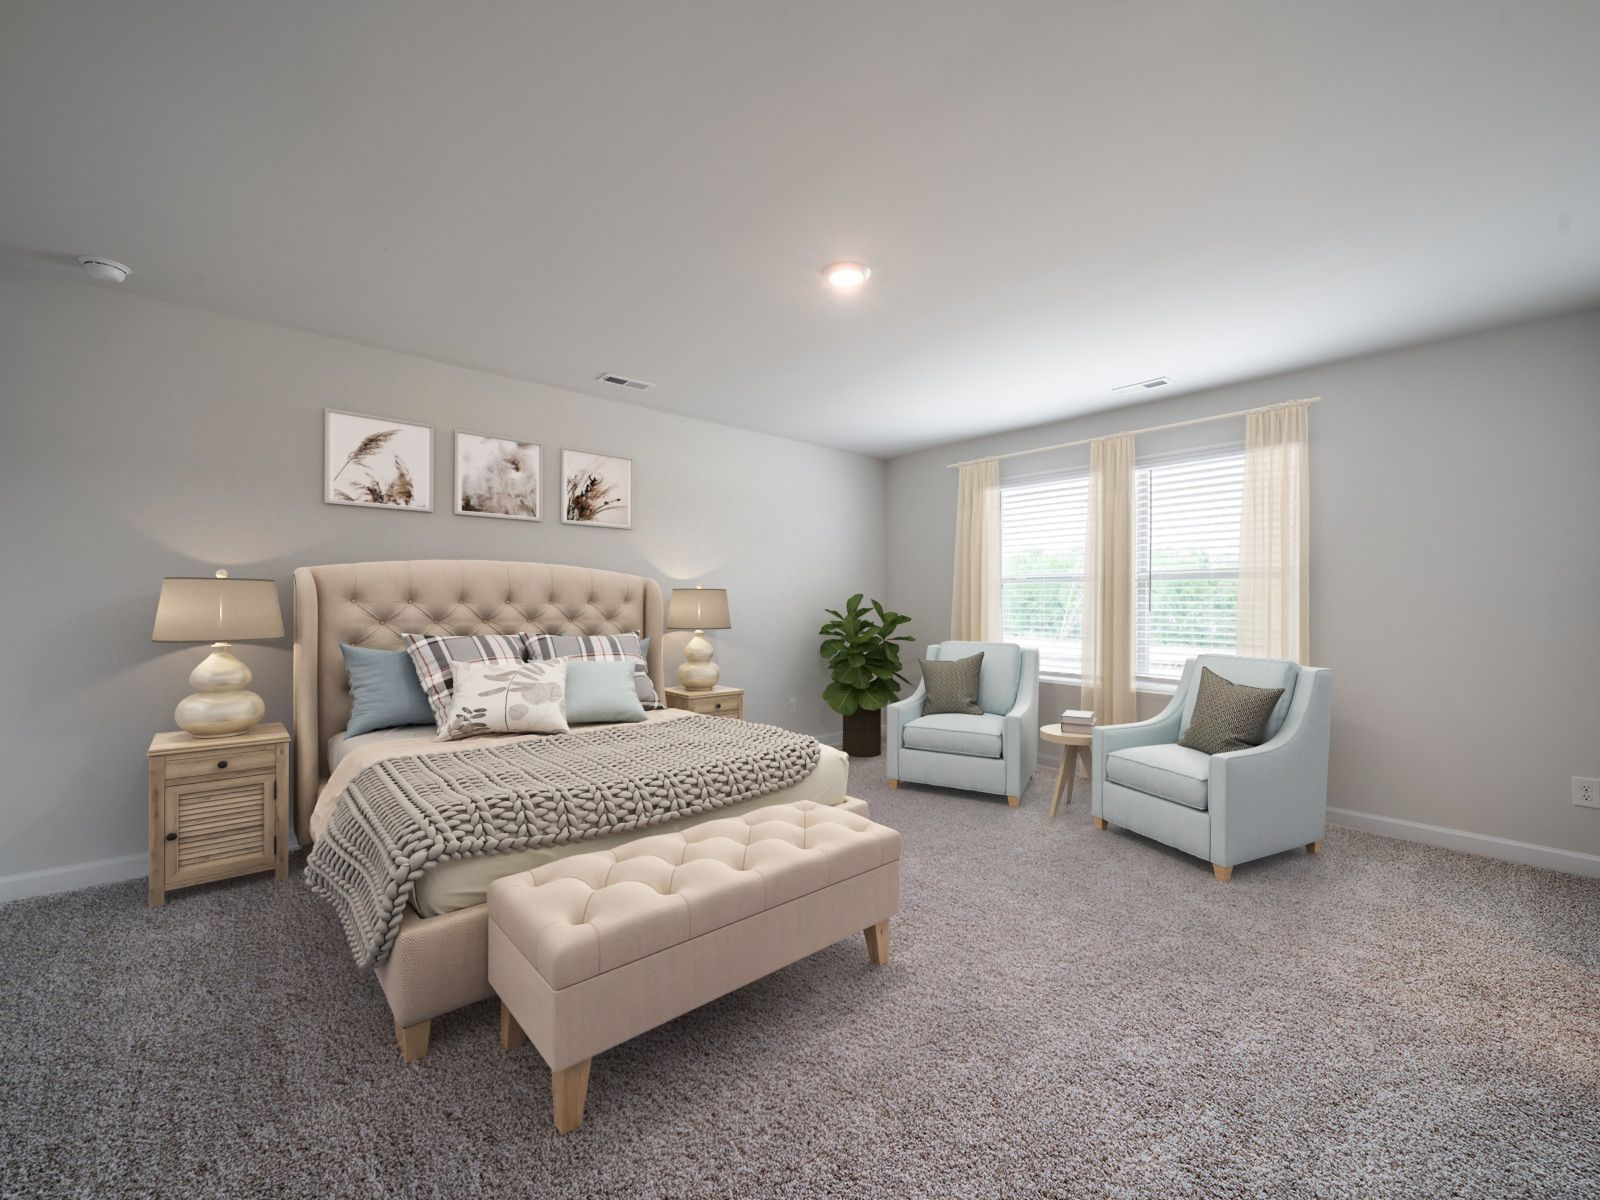 Bedroom featured in the Brentwood By Meritage Homes in Charlotte, NC